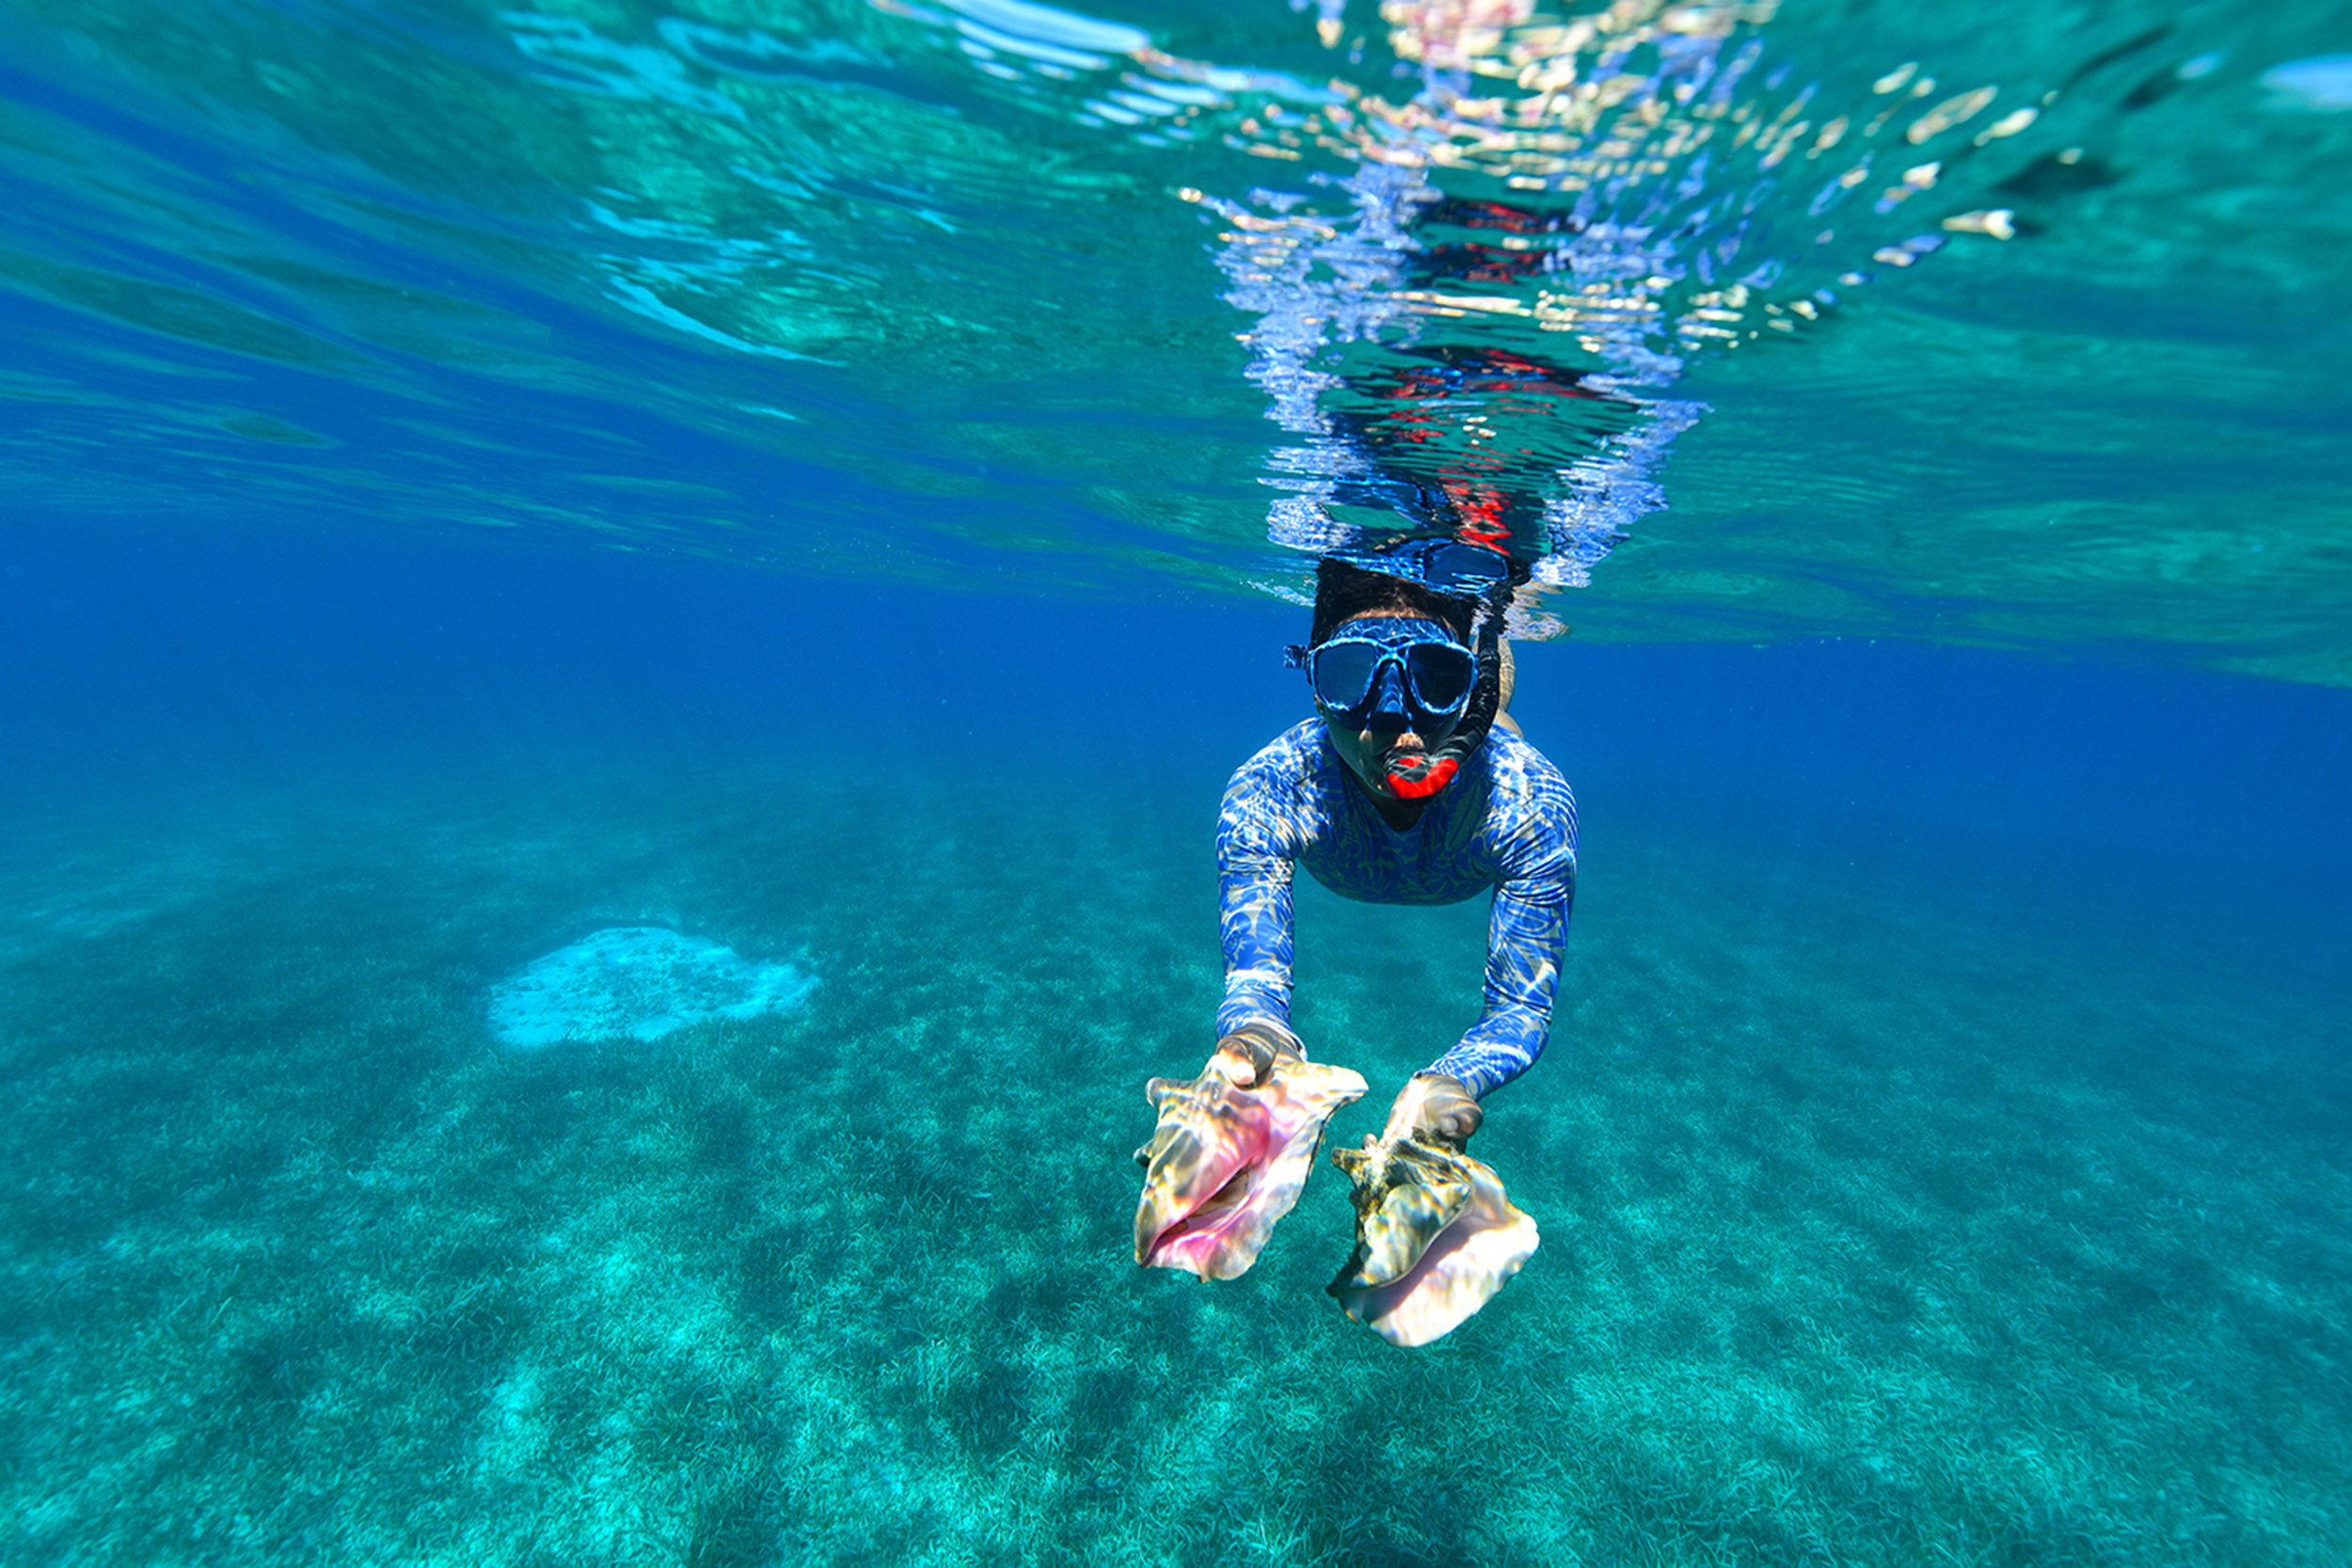 Conch Diving - diving in the Virgin islands - Blue Glass Photography